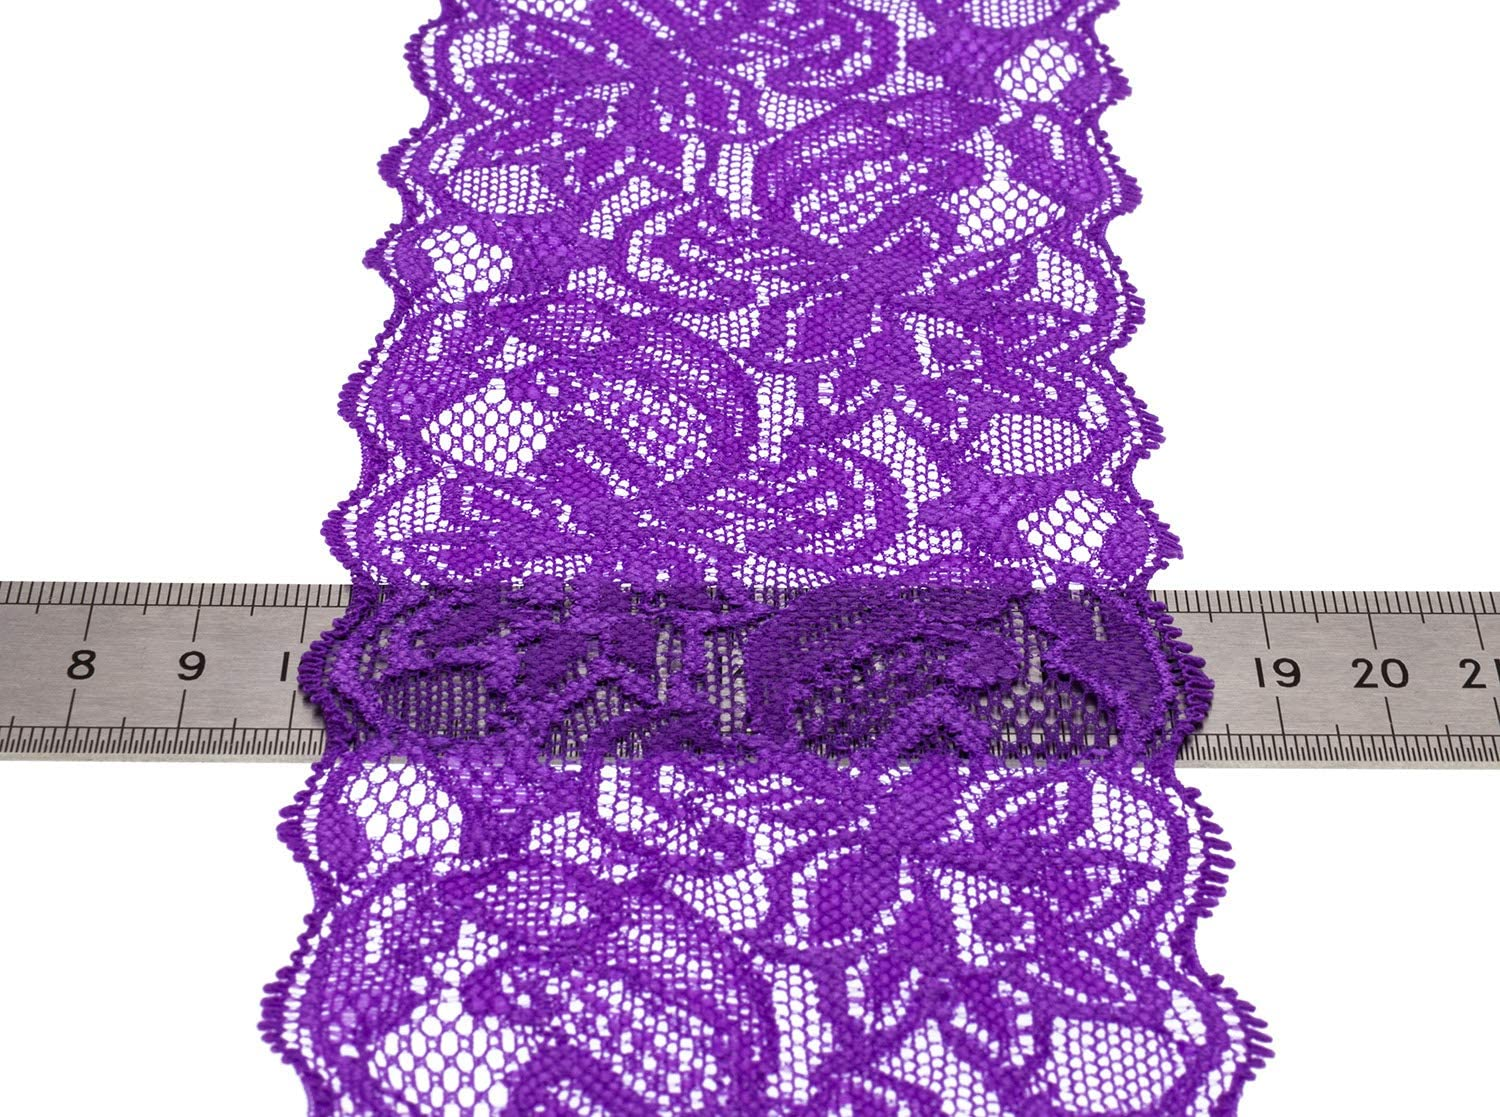 ATRibbons 10 Yards 3 Inch Wide Elastic Lace Trim Floral Pattern Lace Ribbon for Garment,Crafts and Gift Wrapping Light Lake Blue